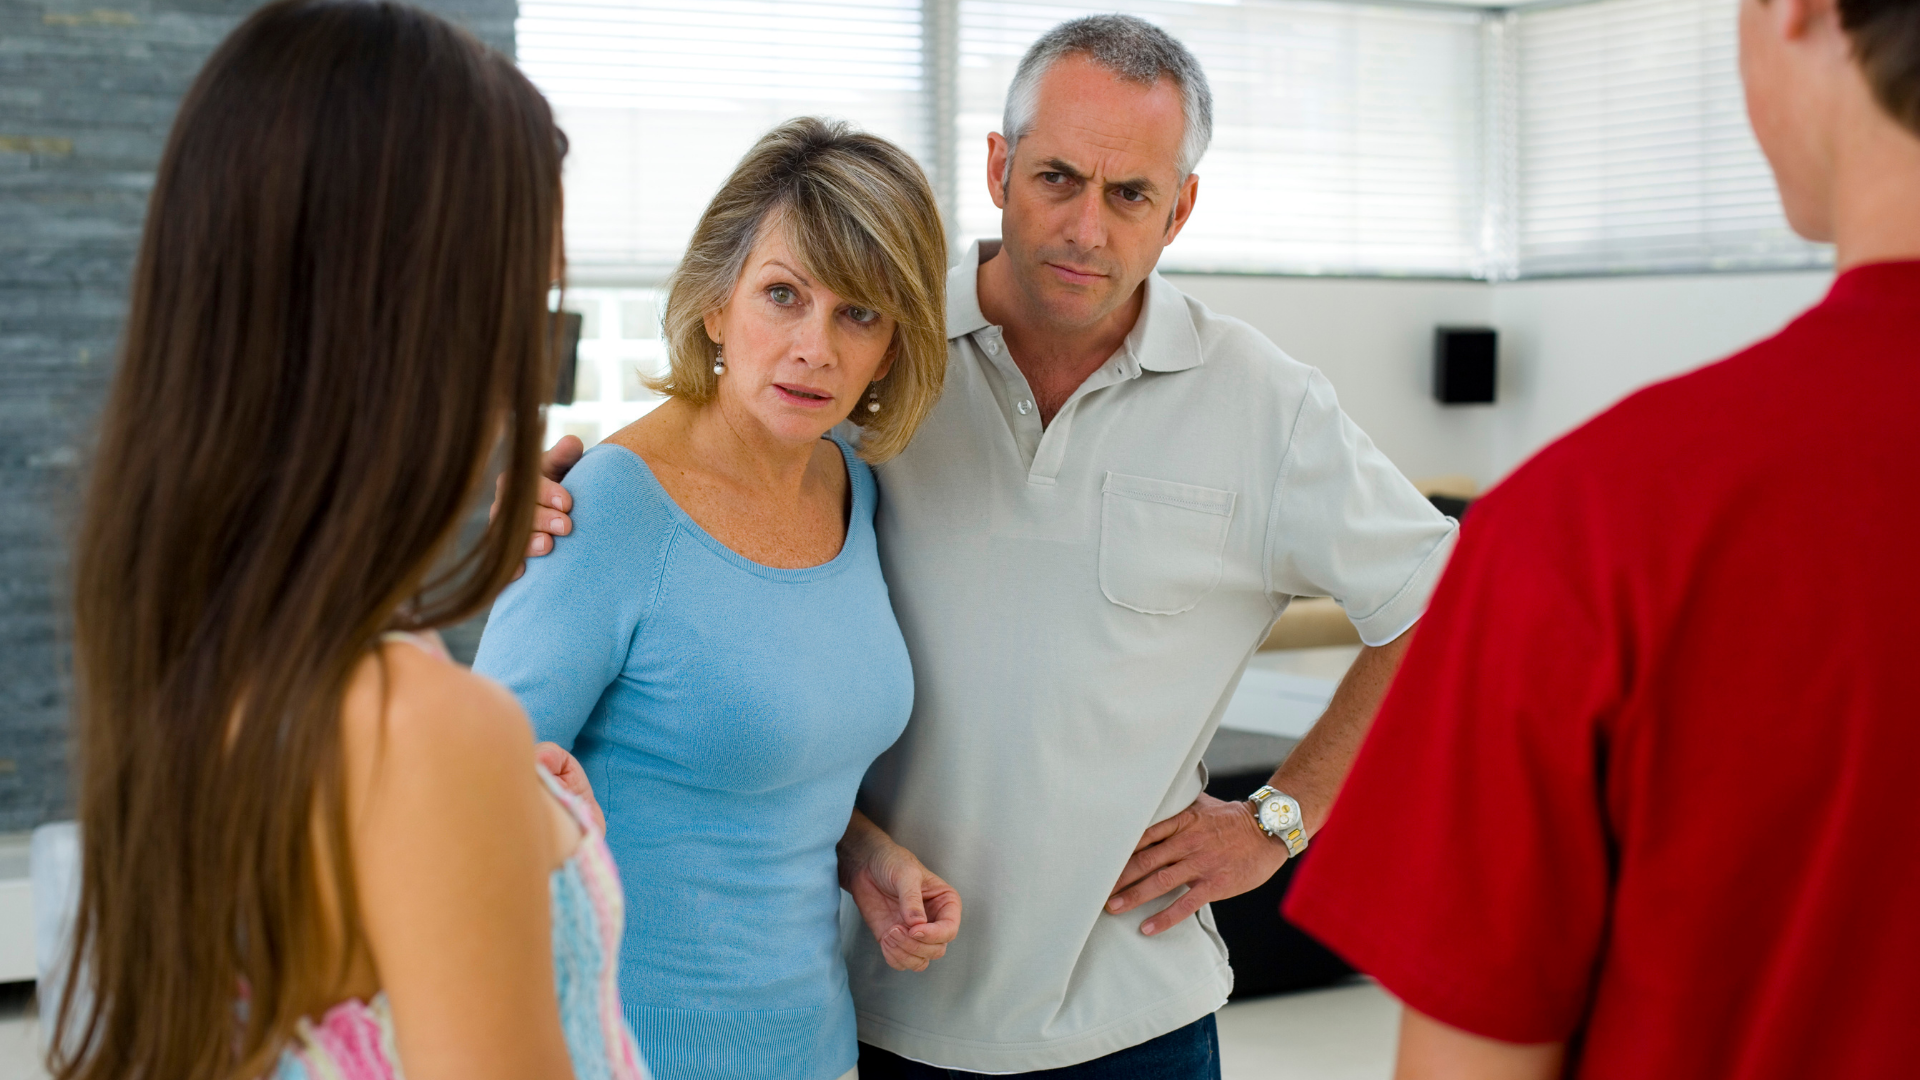 Adolescent Relationships With Parents